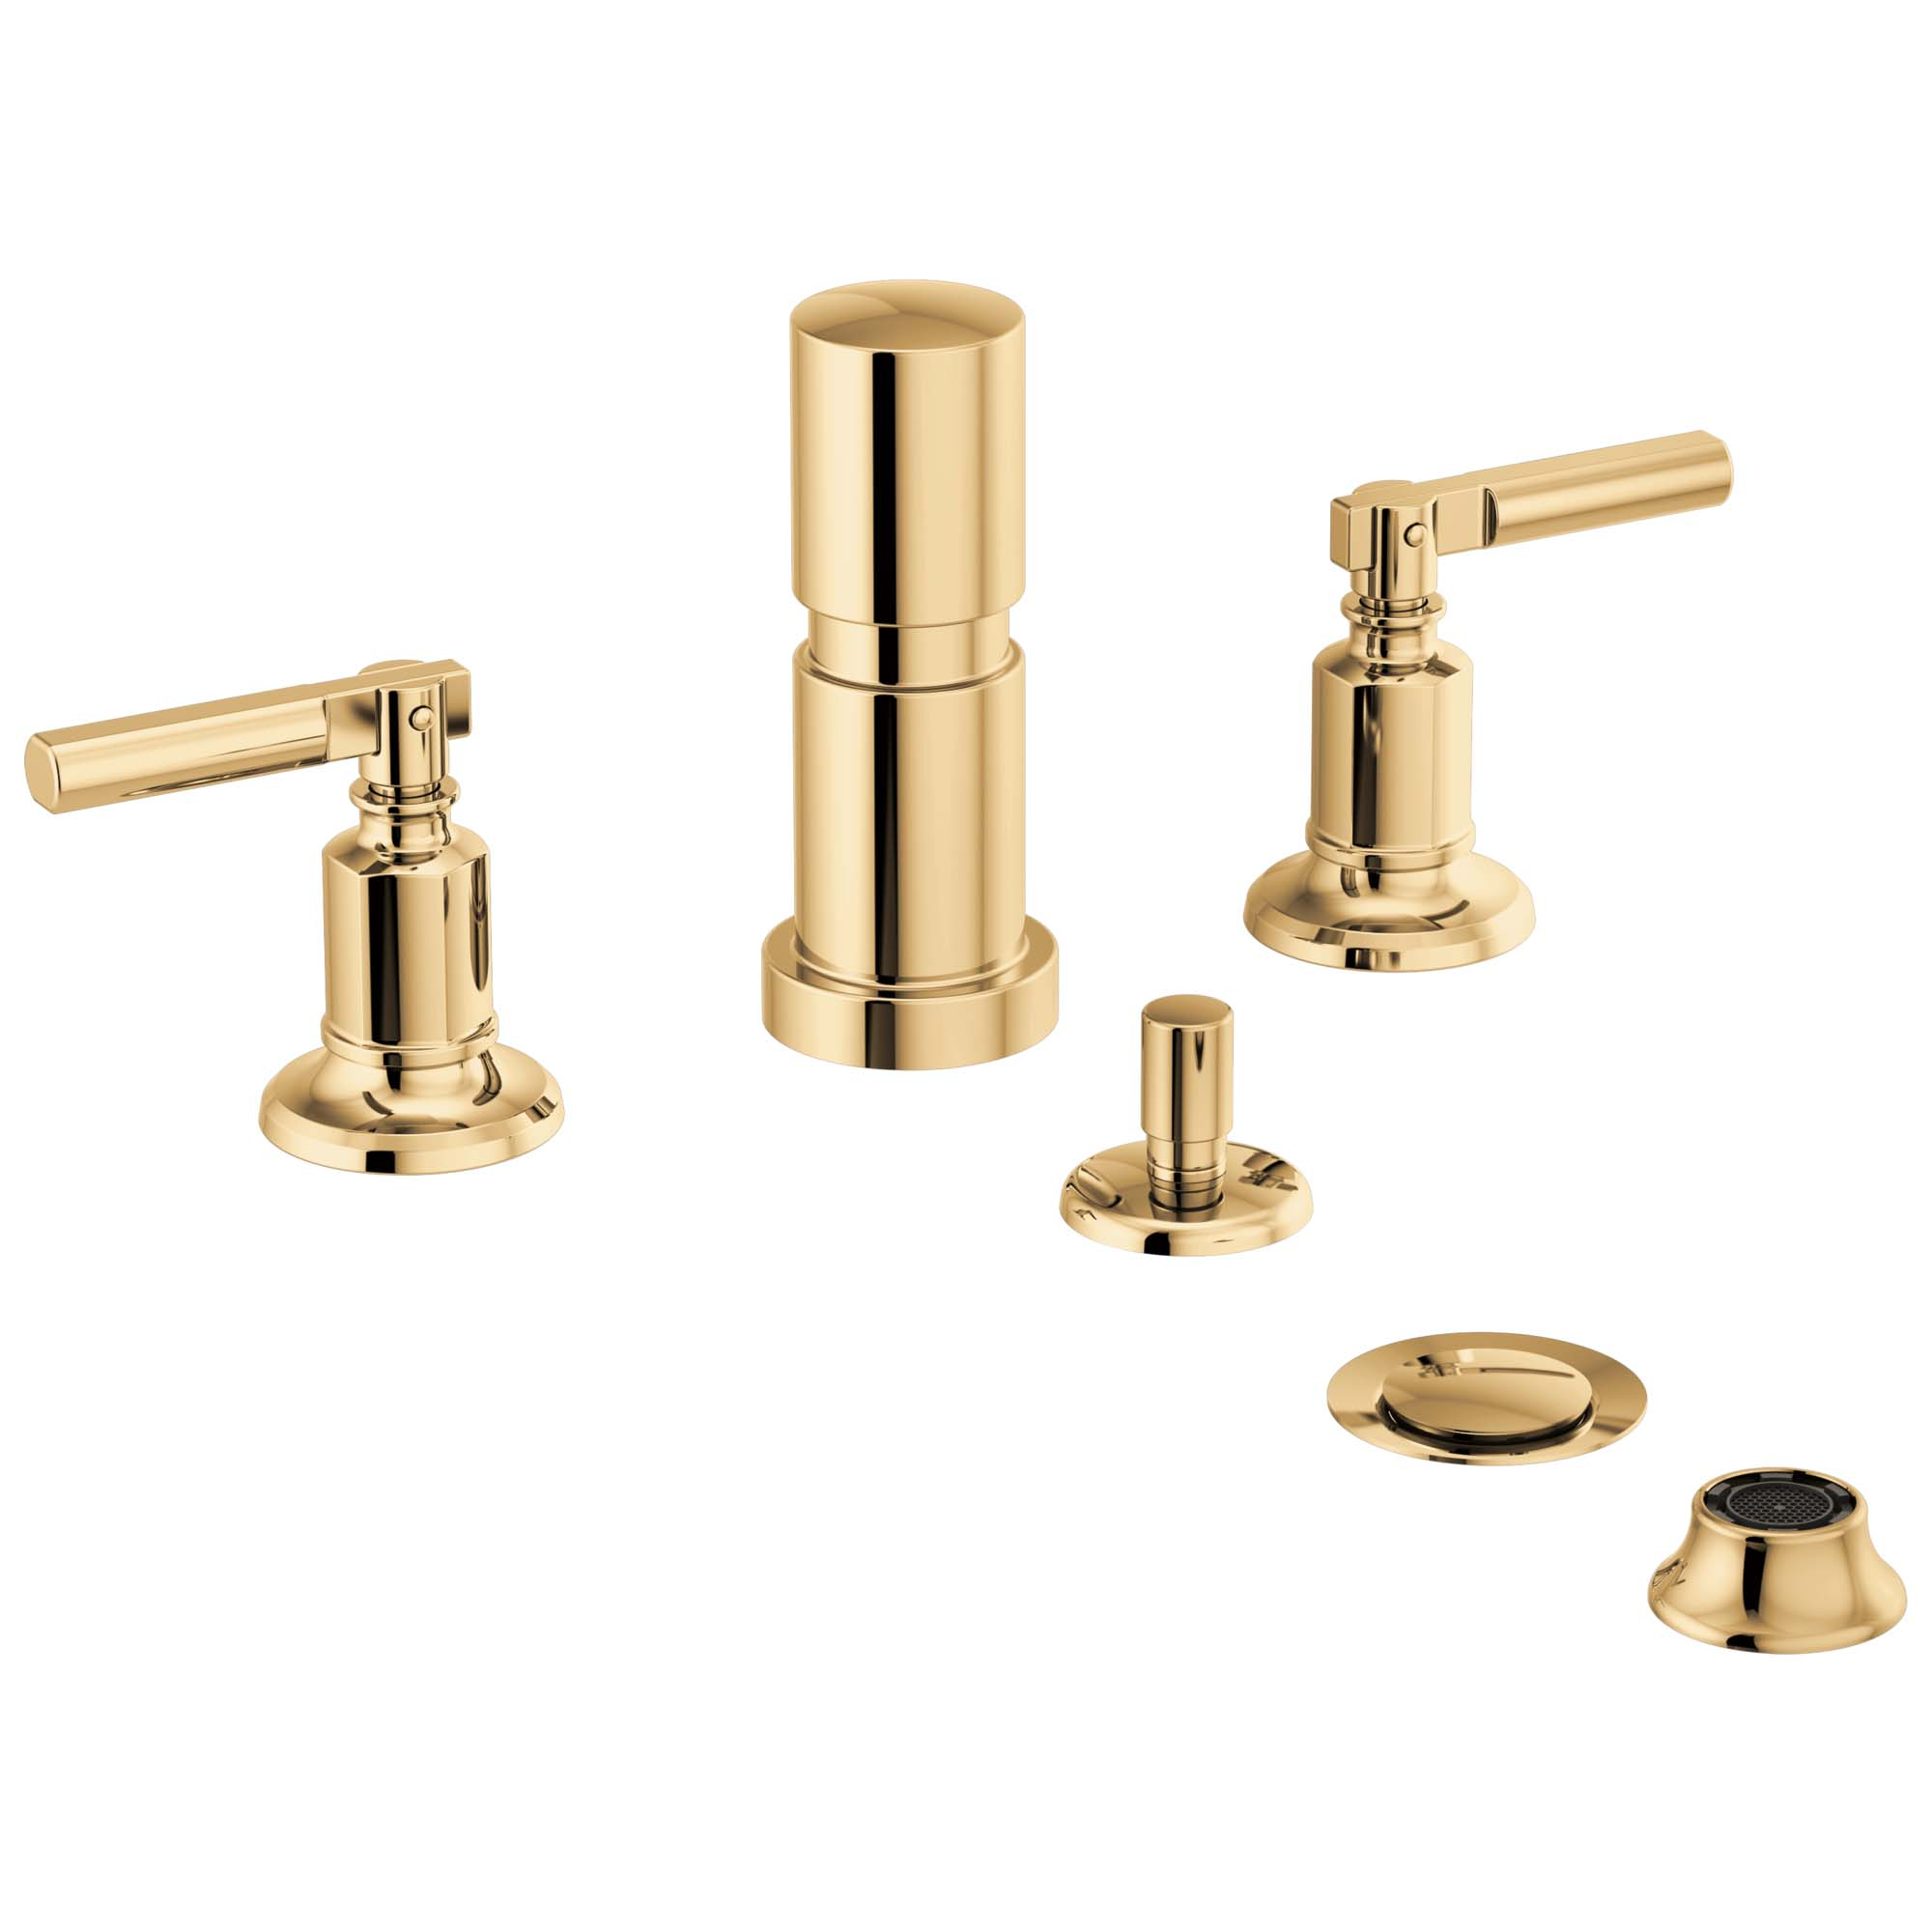 Brizo 68476-PG Brizo Invari: Bidet - Polished Gold